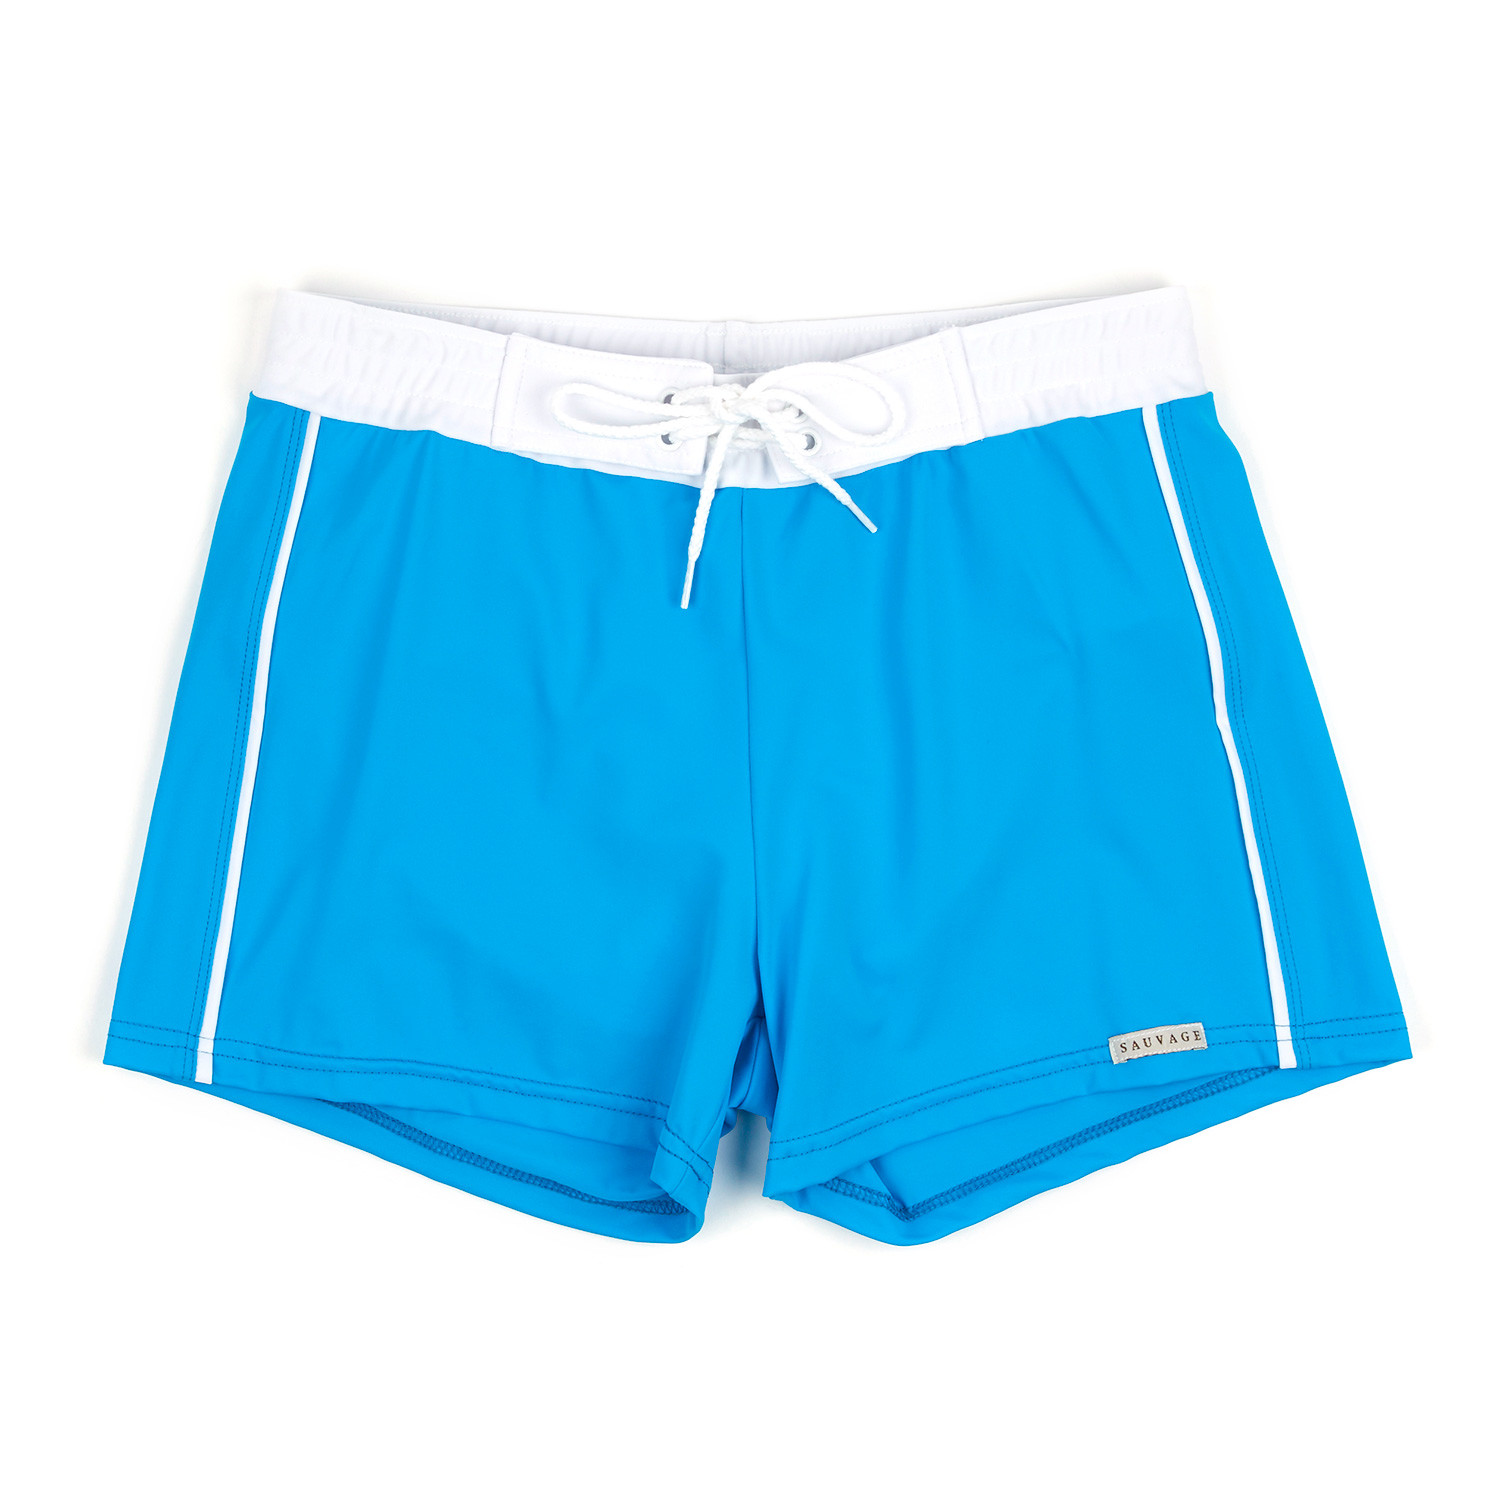 d192a3edf1 Banded Swim Short // Turquoise (S) - Sauvage Swimwear - Touch of Modern